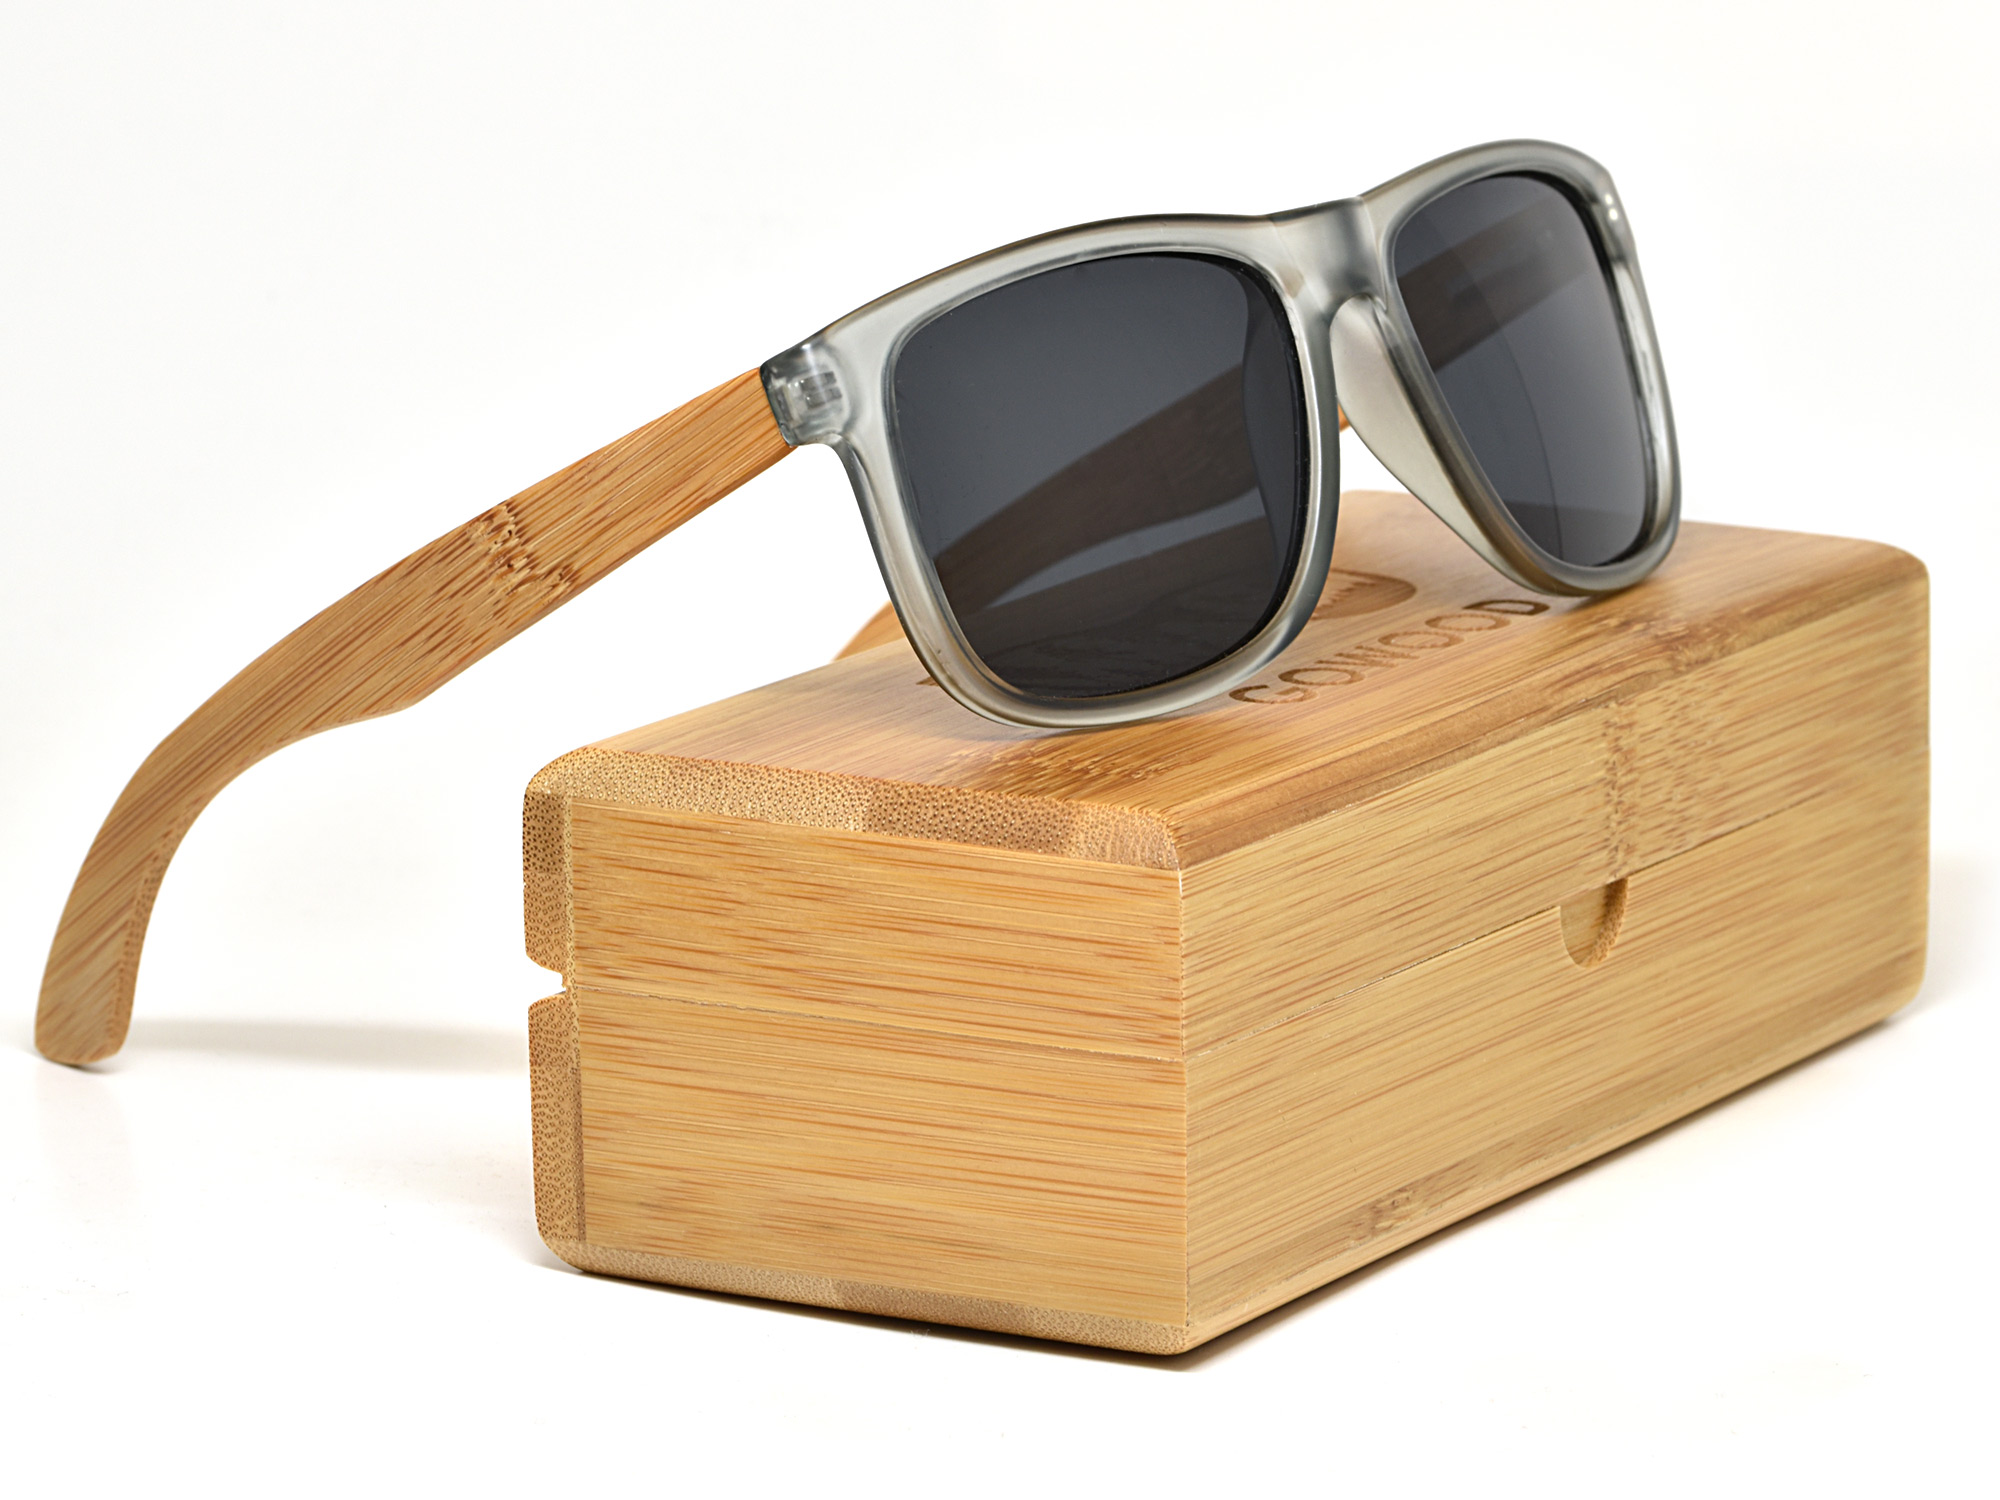 Square bamboo wood sunglasses with black polarized lenses set